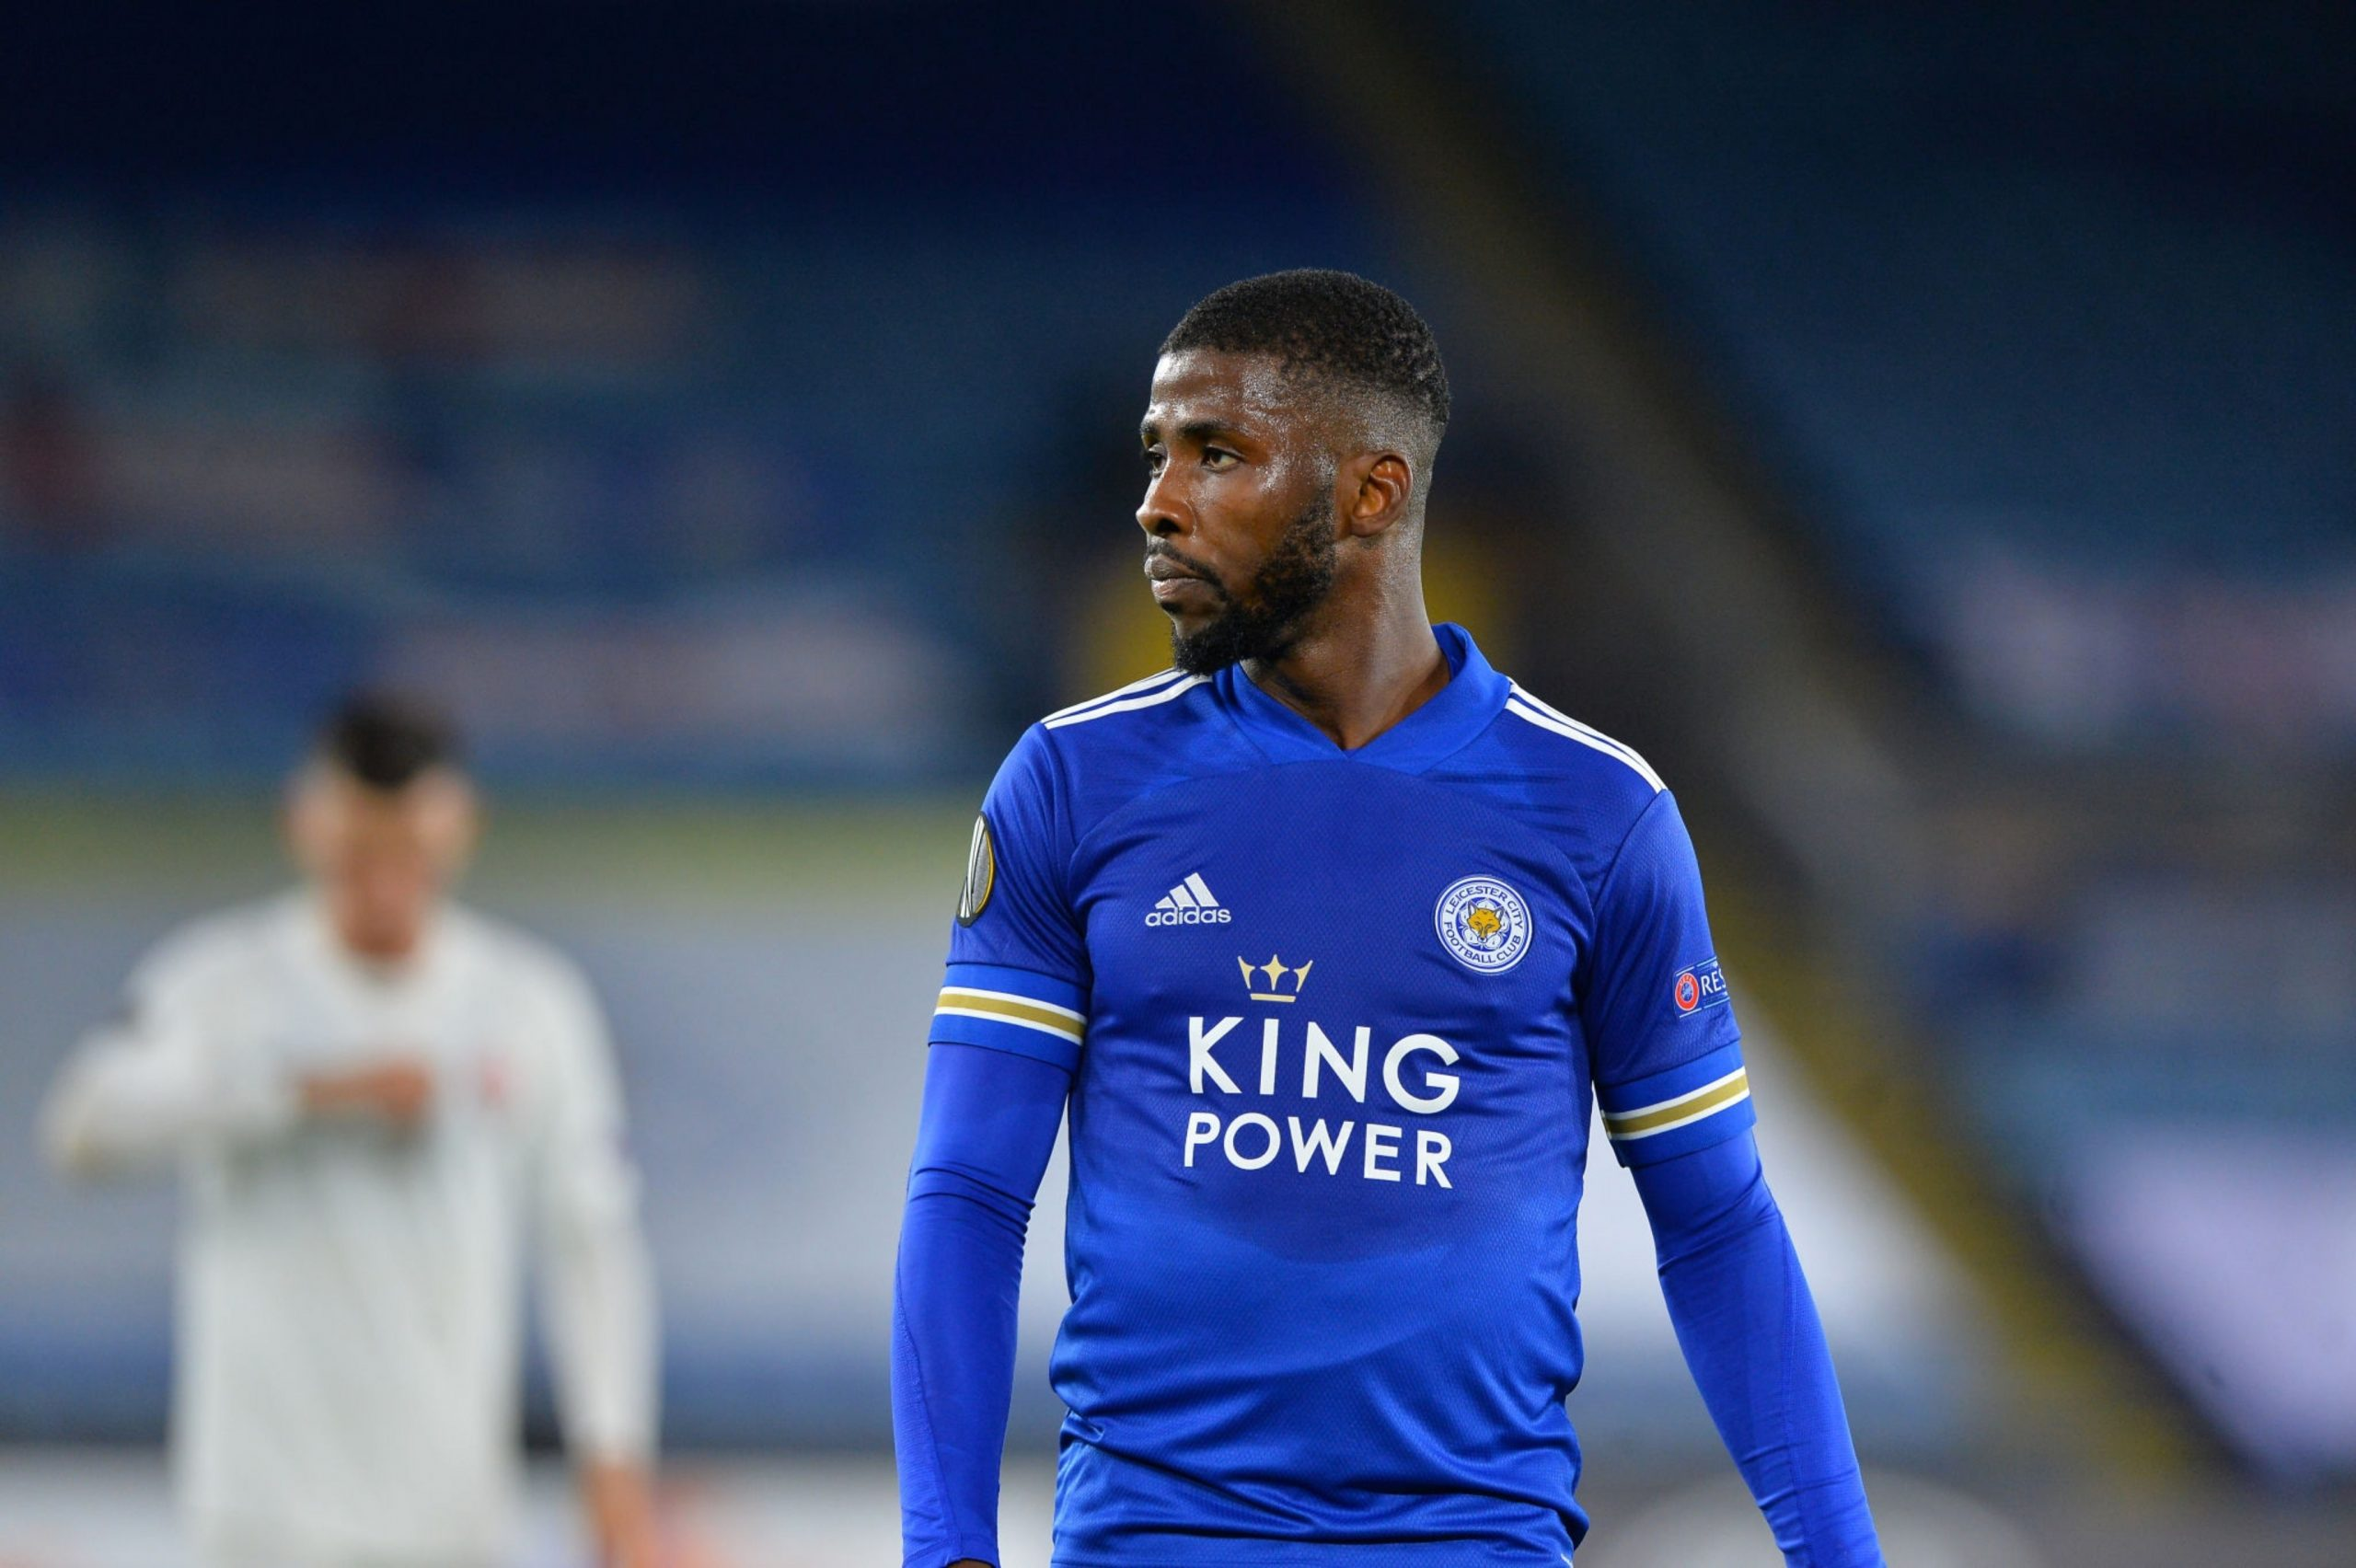 Iheanacho: Leicester City Ready For Tough Leeds United Test